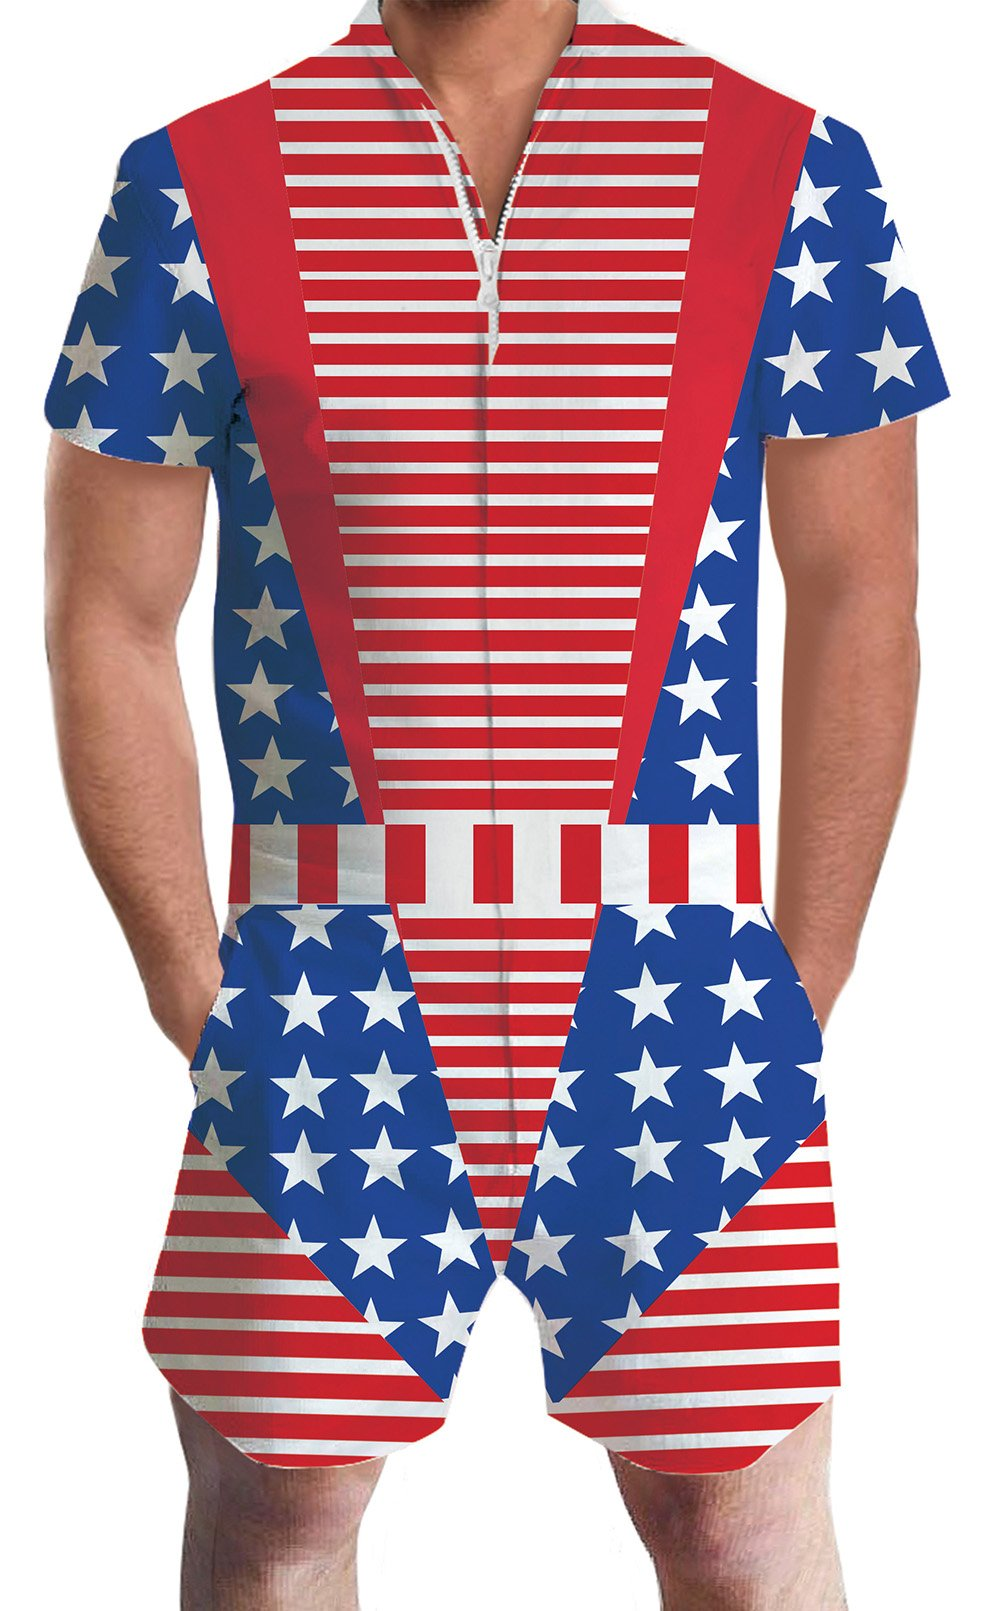 e633af83748a Galleon - Mens Male Sexy Belt Printed Hipster Novelty Shorts Cargo Pants  Tees Clothes Jumpsuits Rompers Overalls M